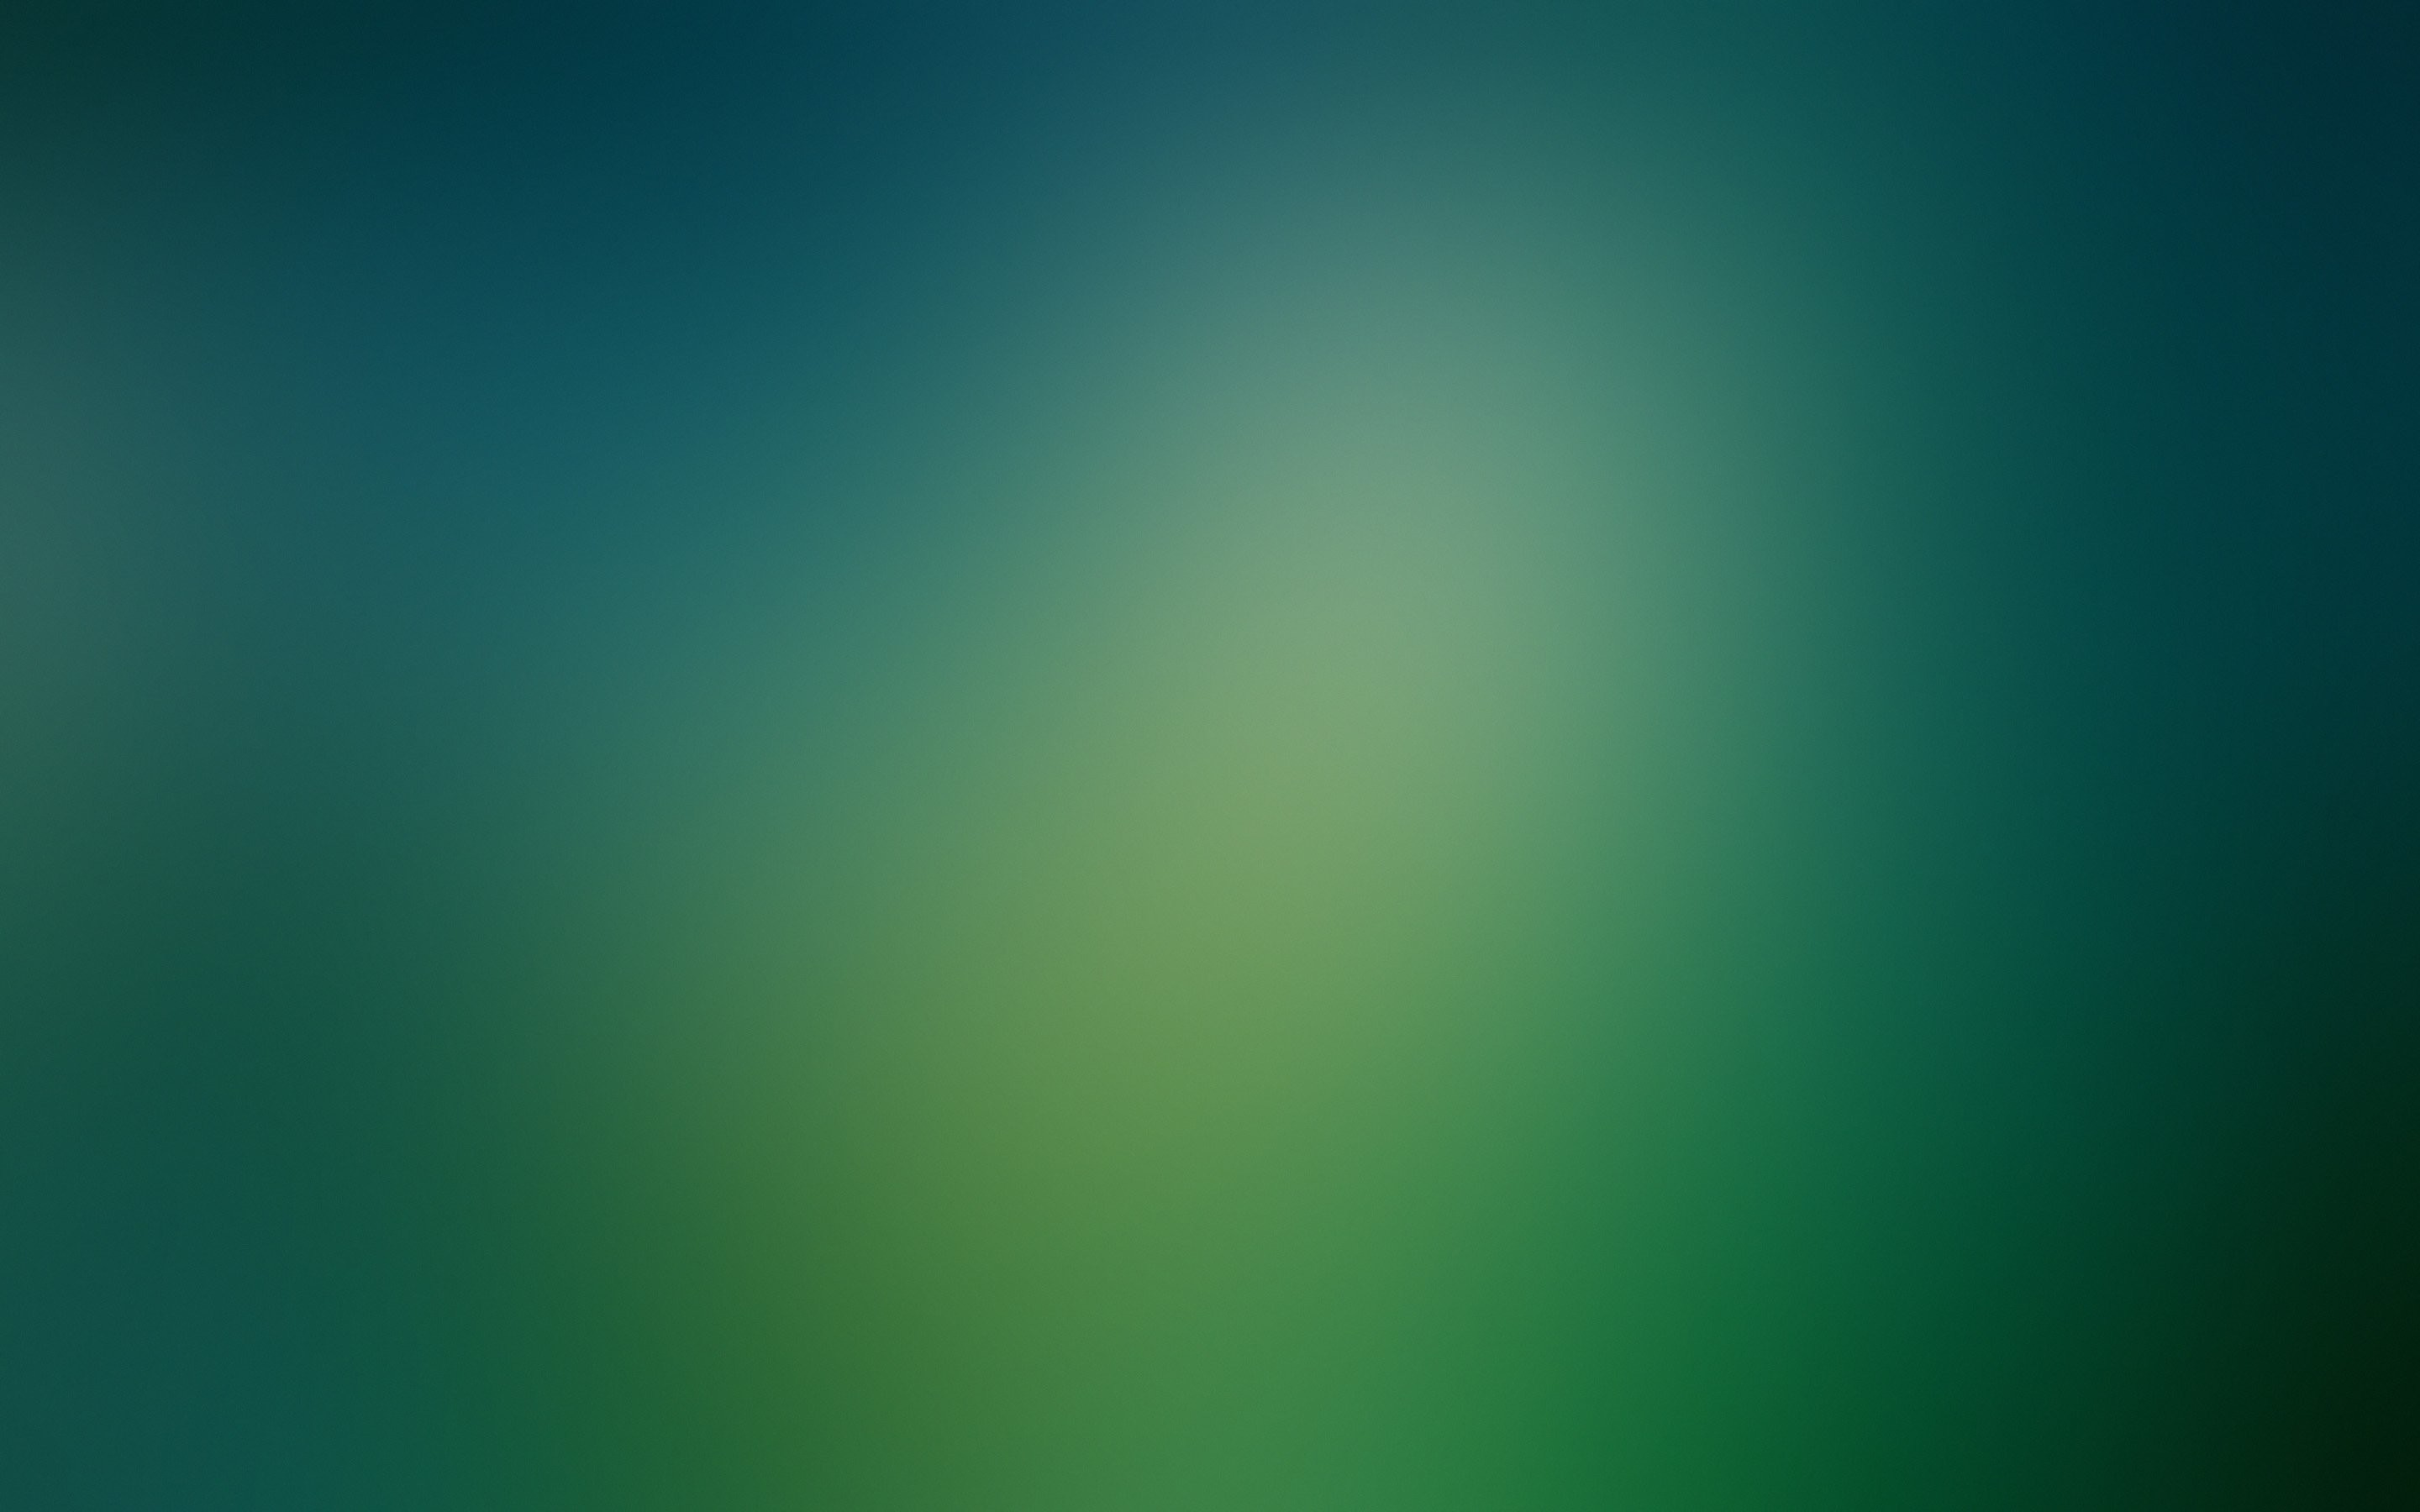 2880x1800 Desktop Background Abstract Green Noises